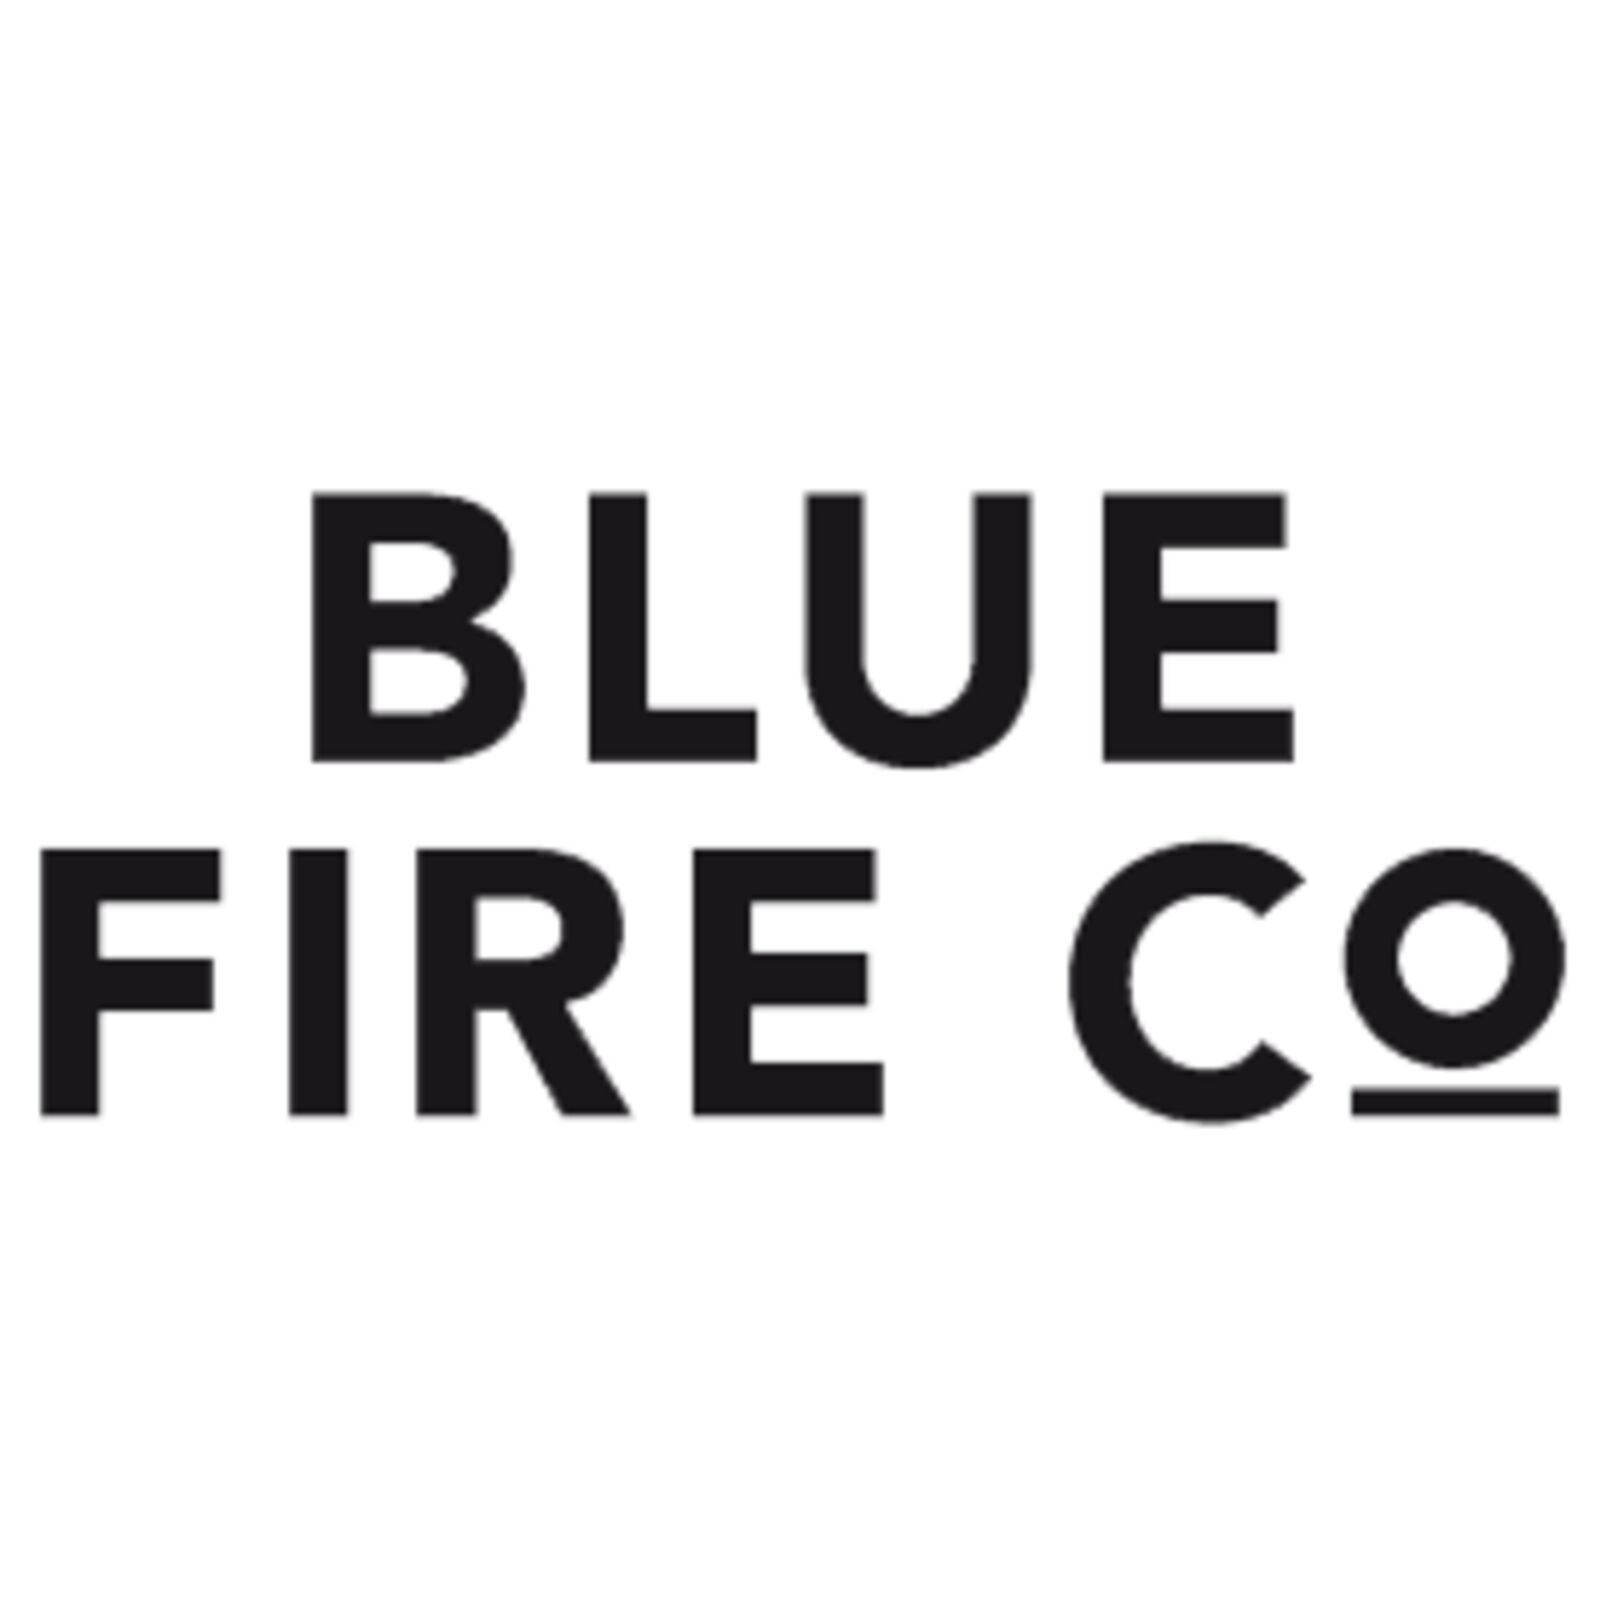 BLUE FIRE CO